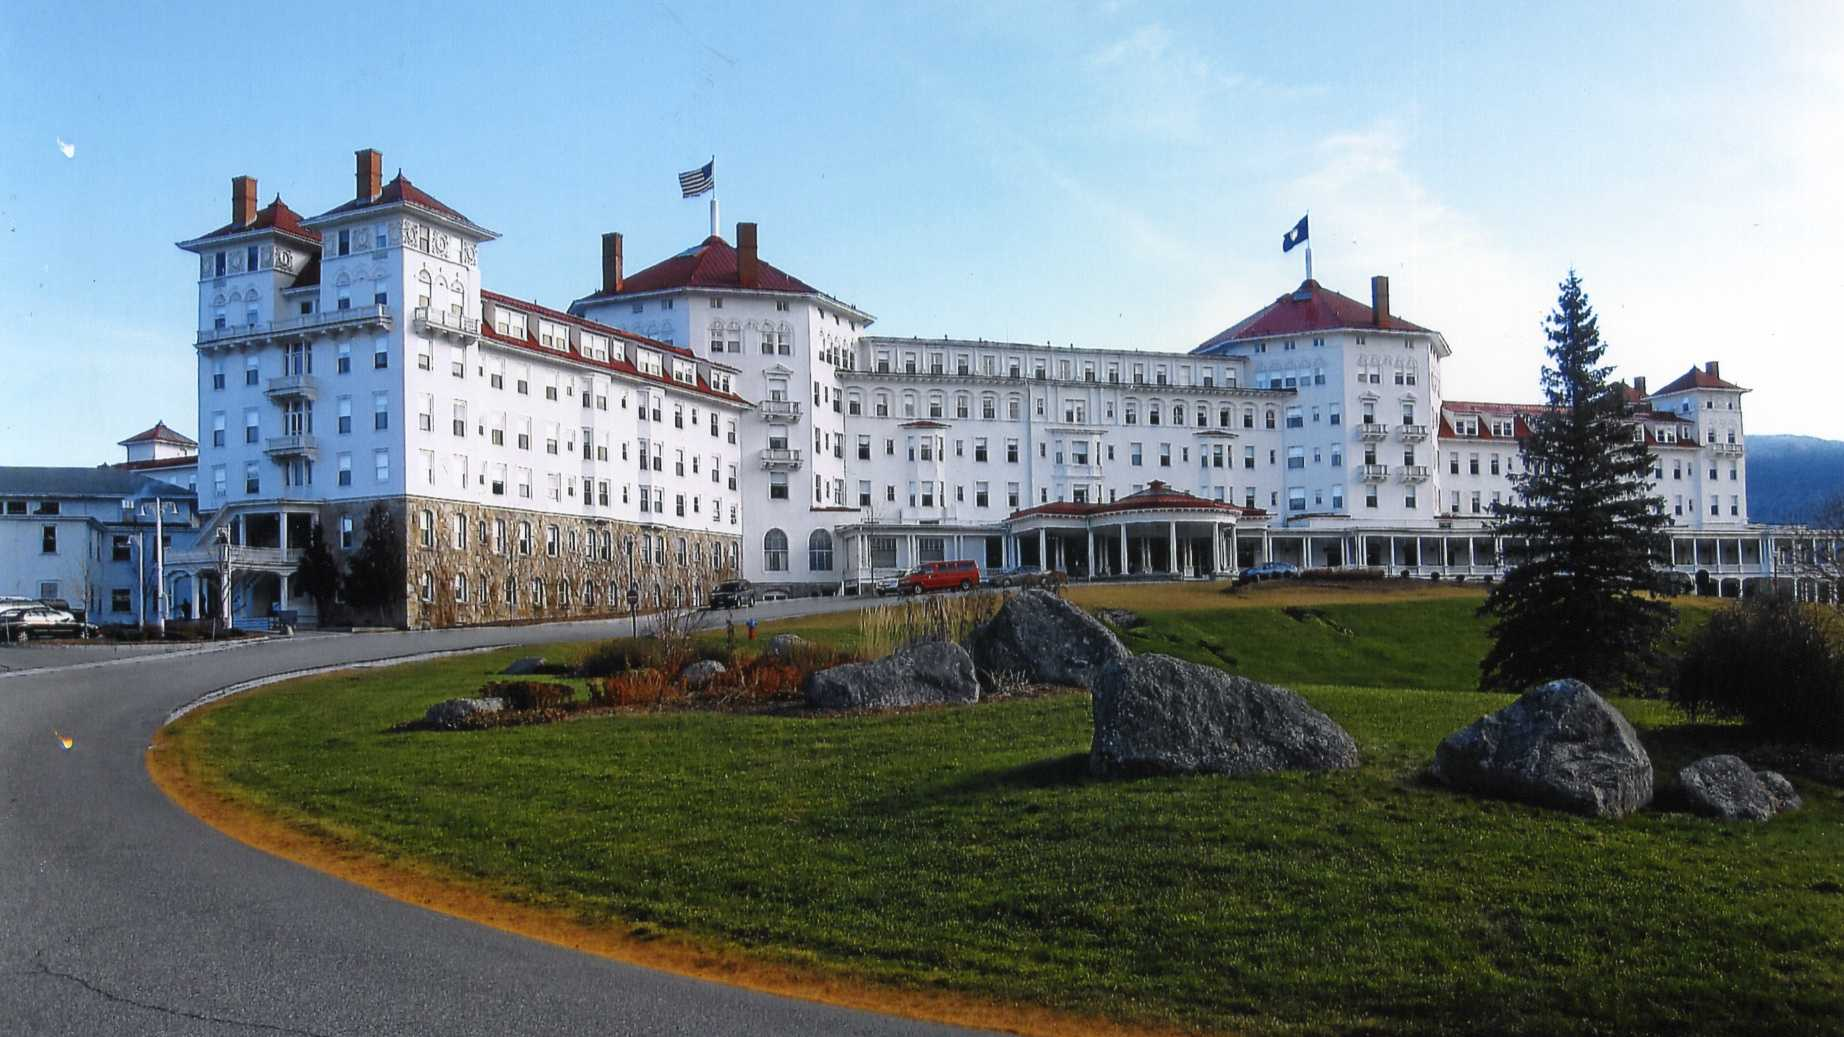 I hail from Massachusetts, but I have some ties to New Hampshire. I have a cousin that lives in Nashua and I also got engaged at the Mount Washington Hotel in Bretton Woods!